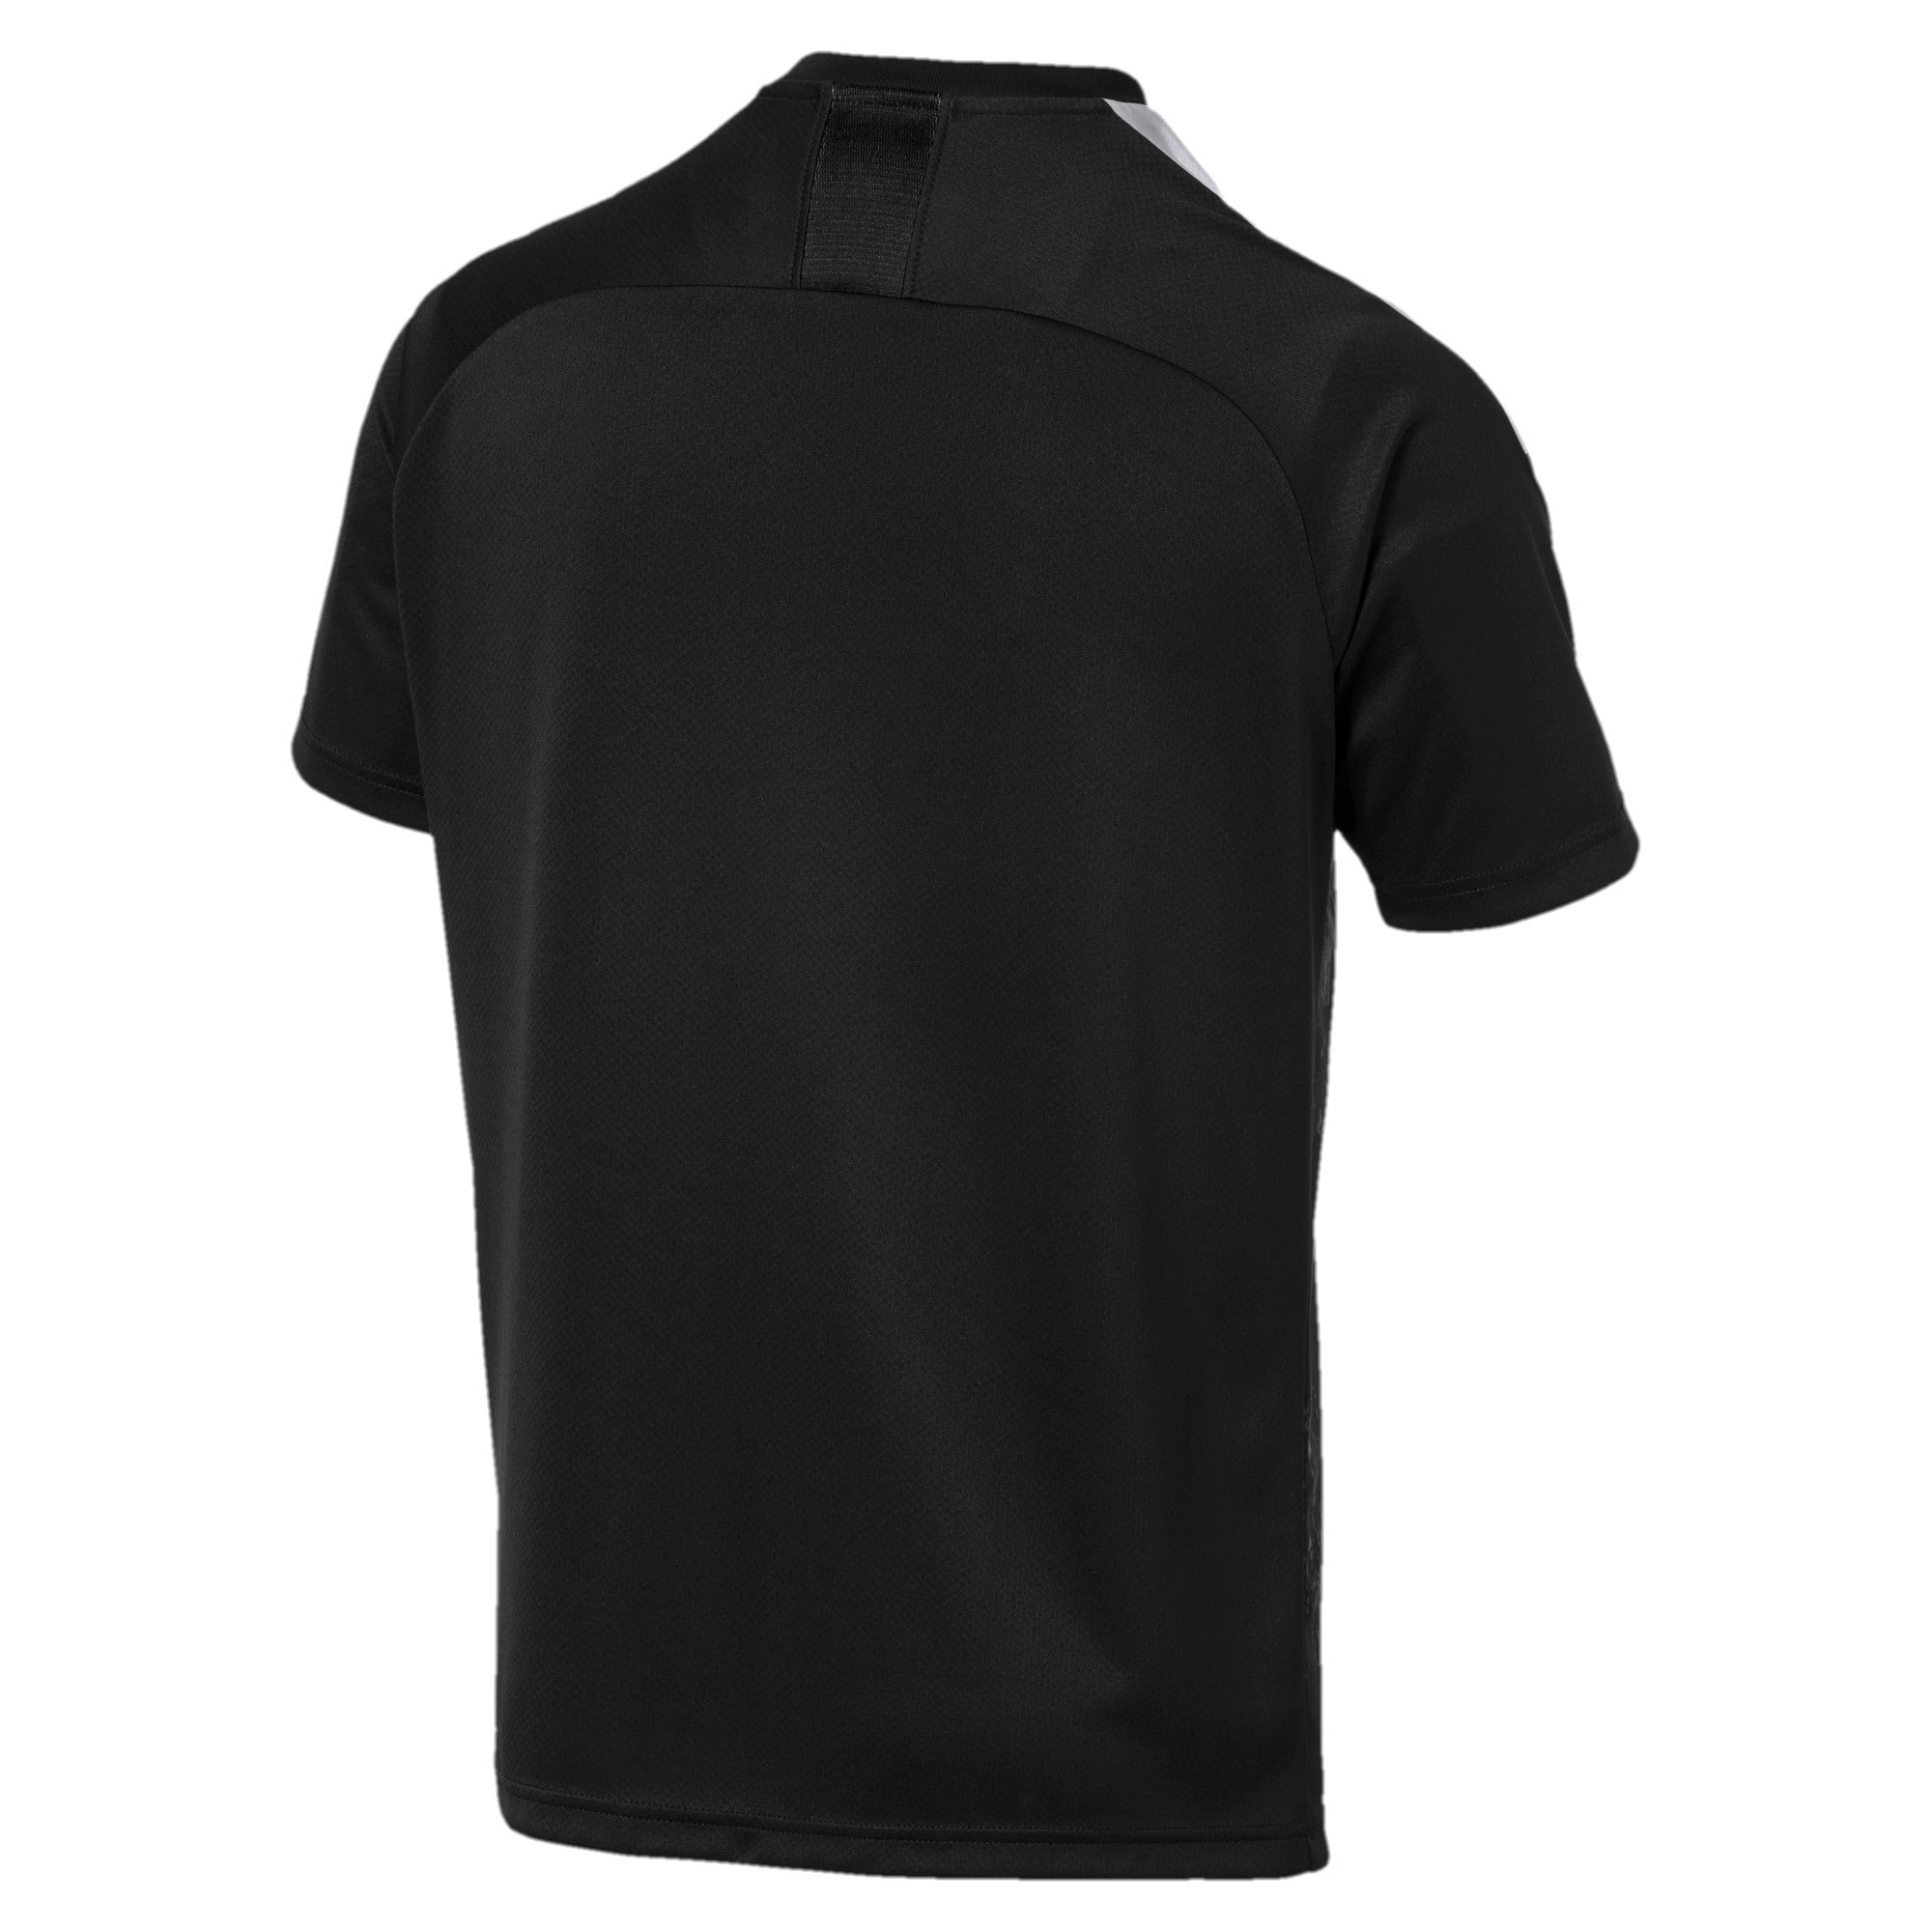 Thumbnail 2 of BVB Men's Away Replica Jersey, Puma Black, medium